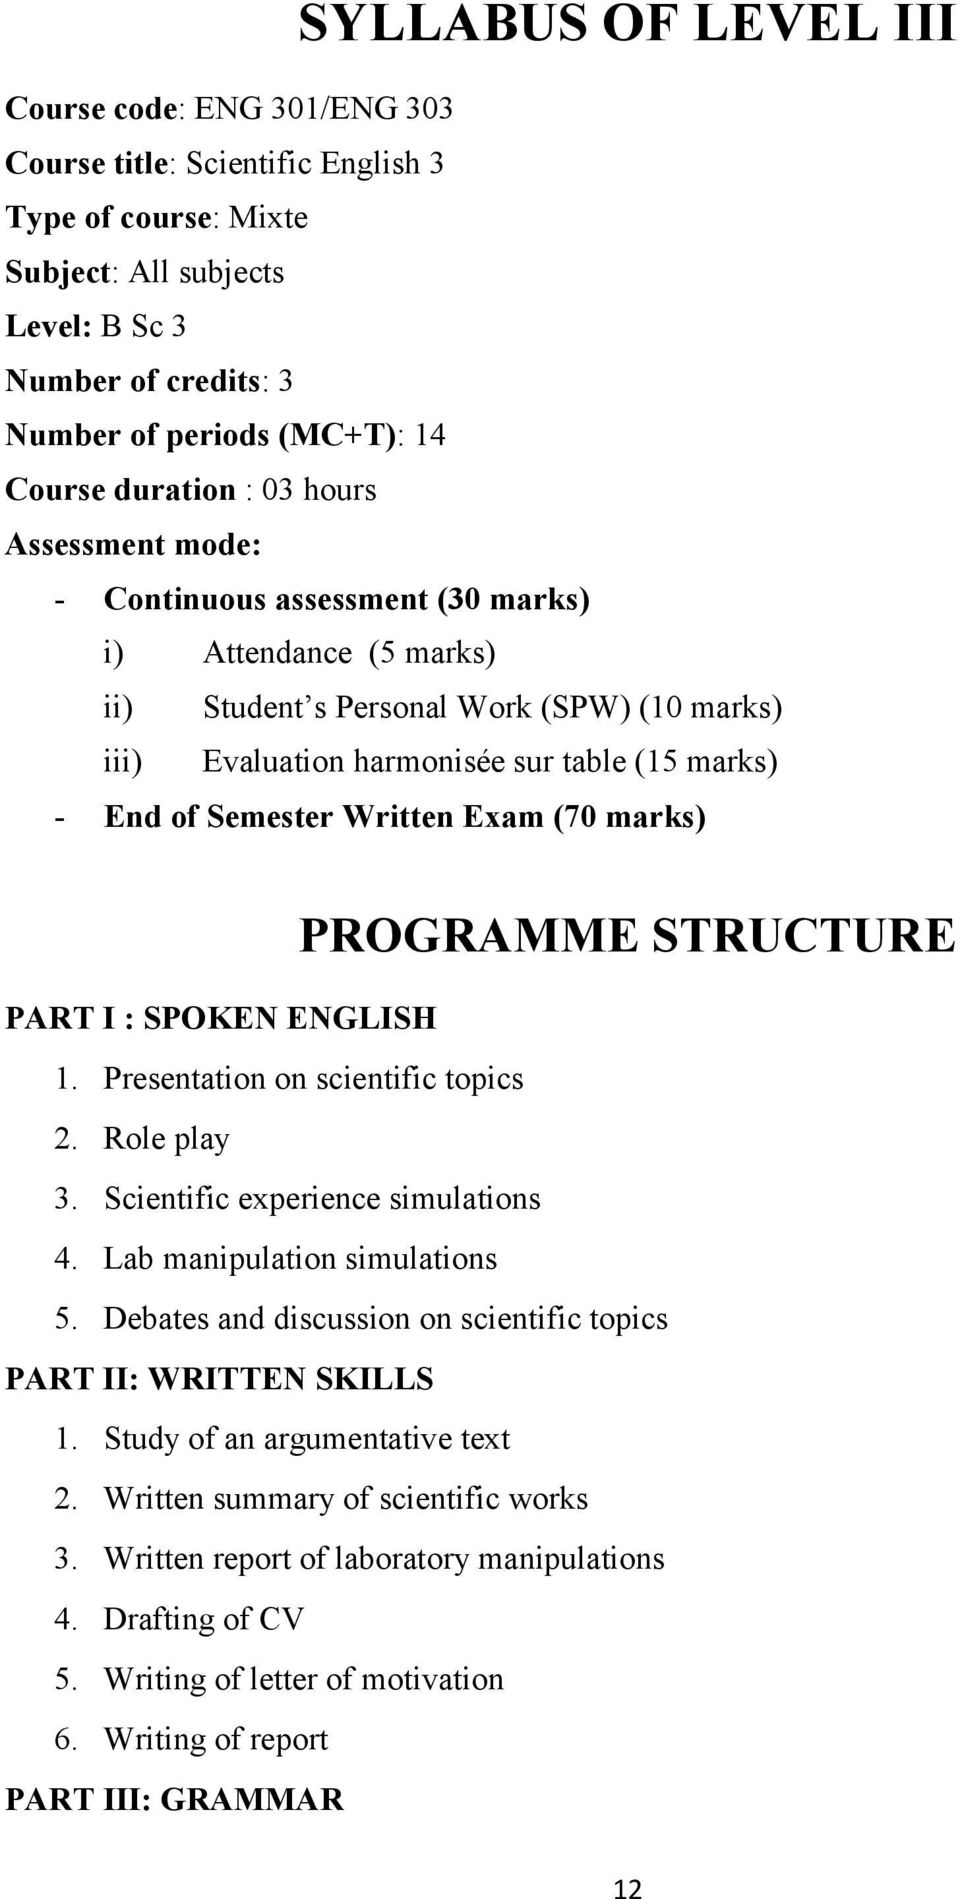 End of Semester Written Exam (70 marks) PROGRAMME STRUCTURE PART I : SPOKEN ENGLISH 1. Presentation on scientific topics 2. Role play 3. Scientific experience simulations 4.